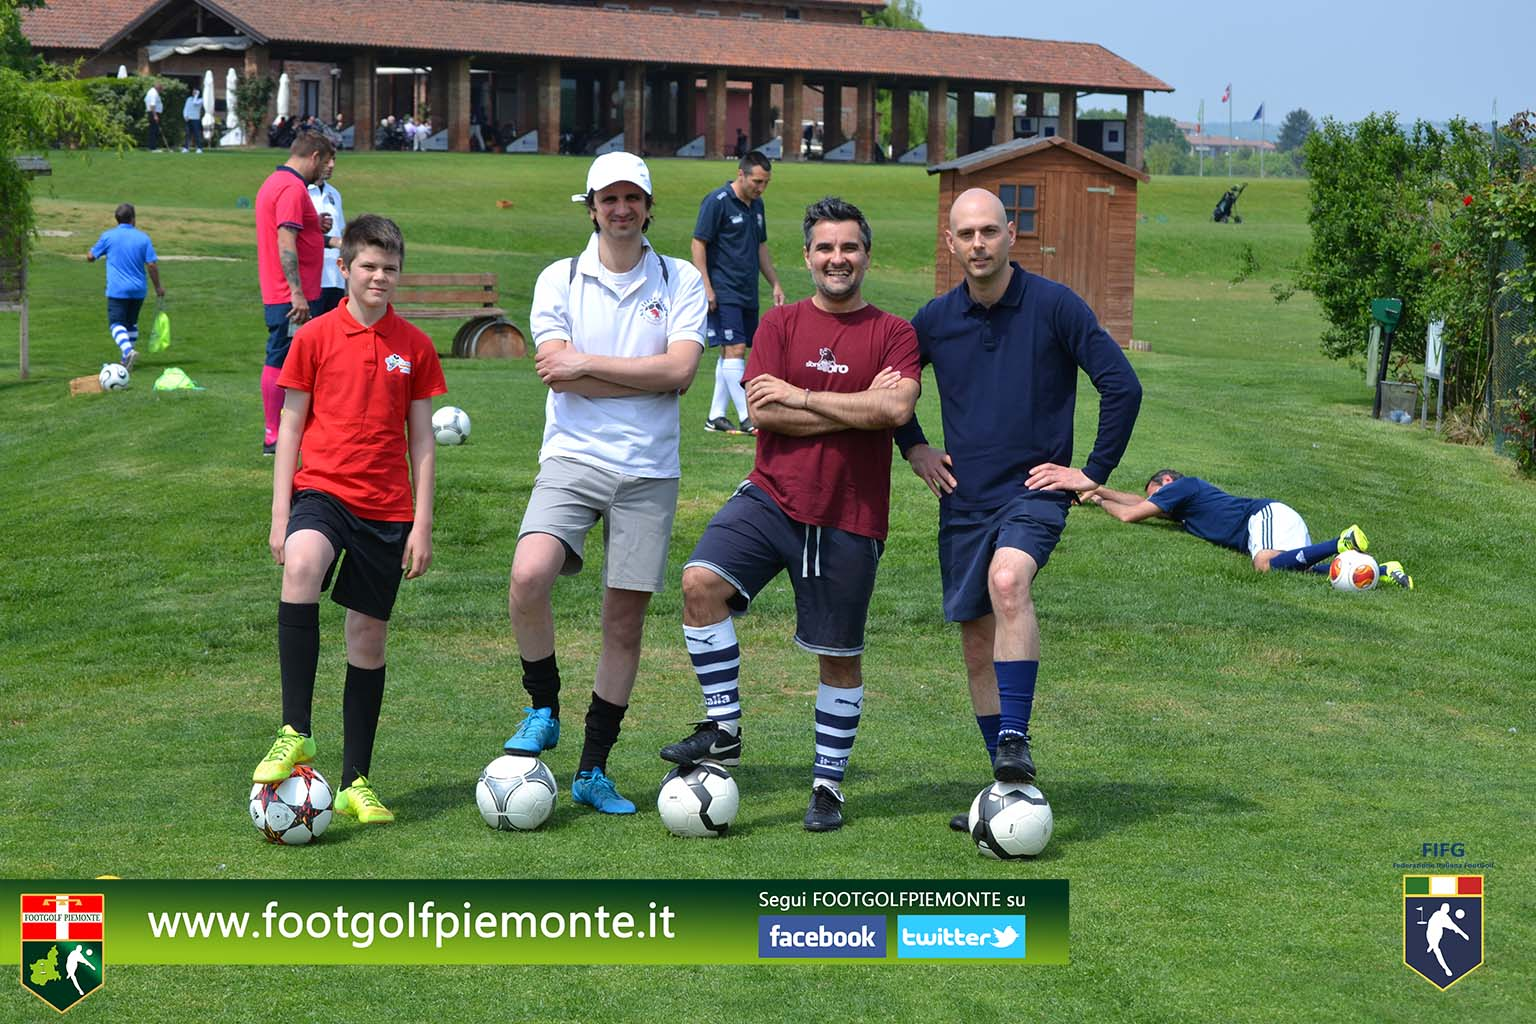 FOTO 9 Regions' Cup Footgolf Piemonte 2016 Golf Città di Asti (At) 30apr16-79